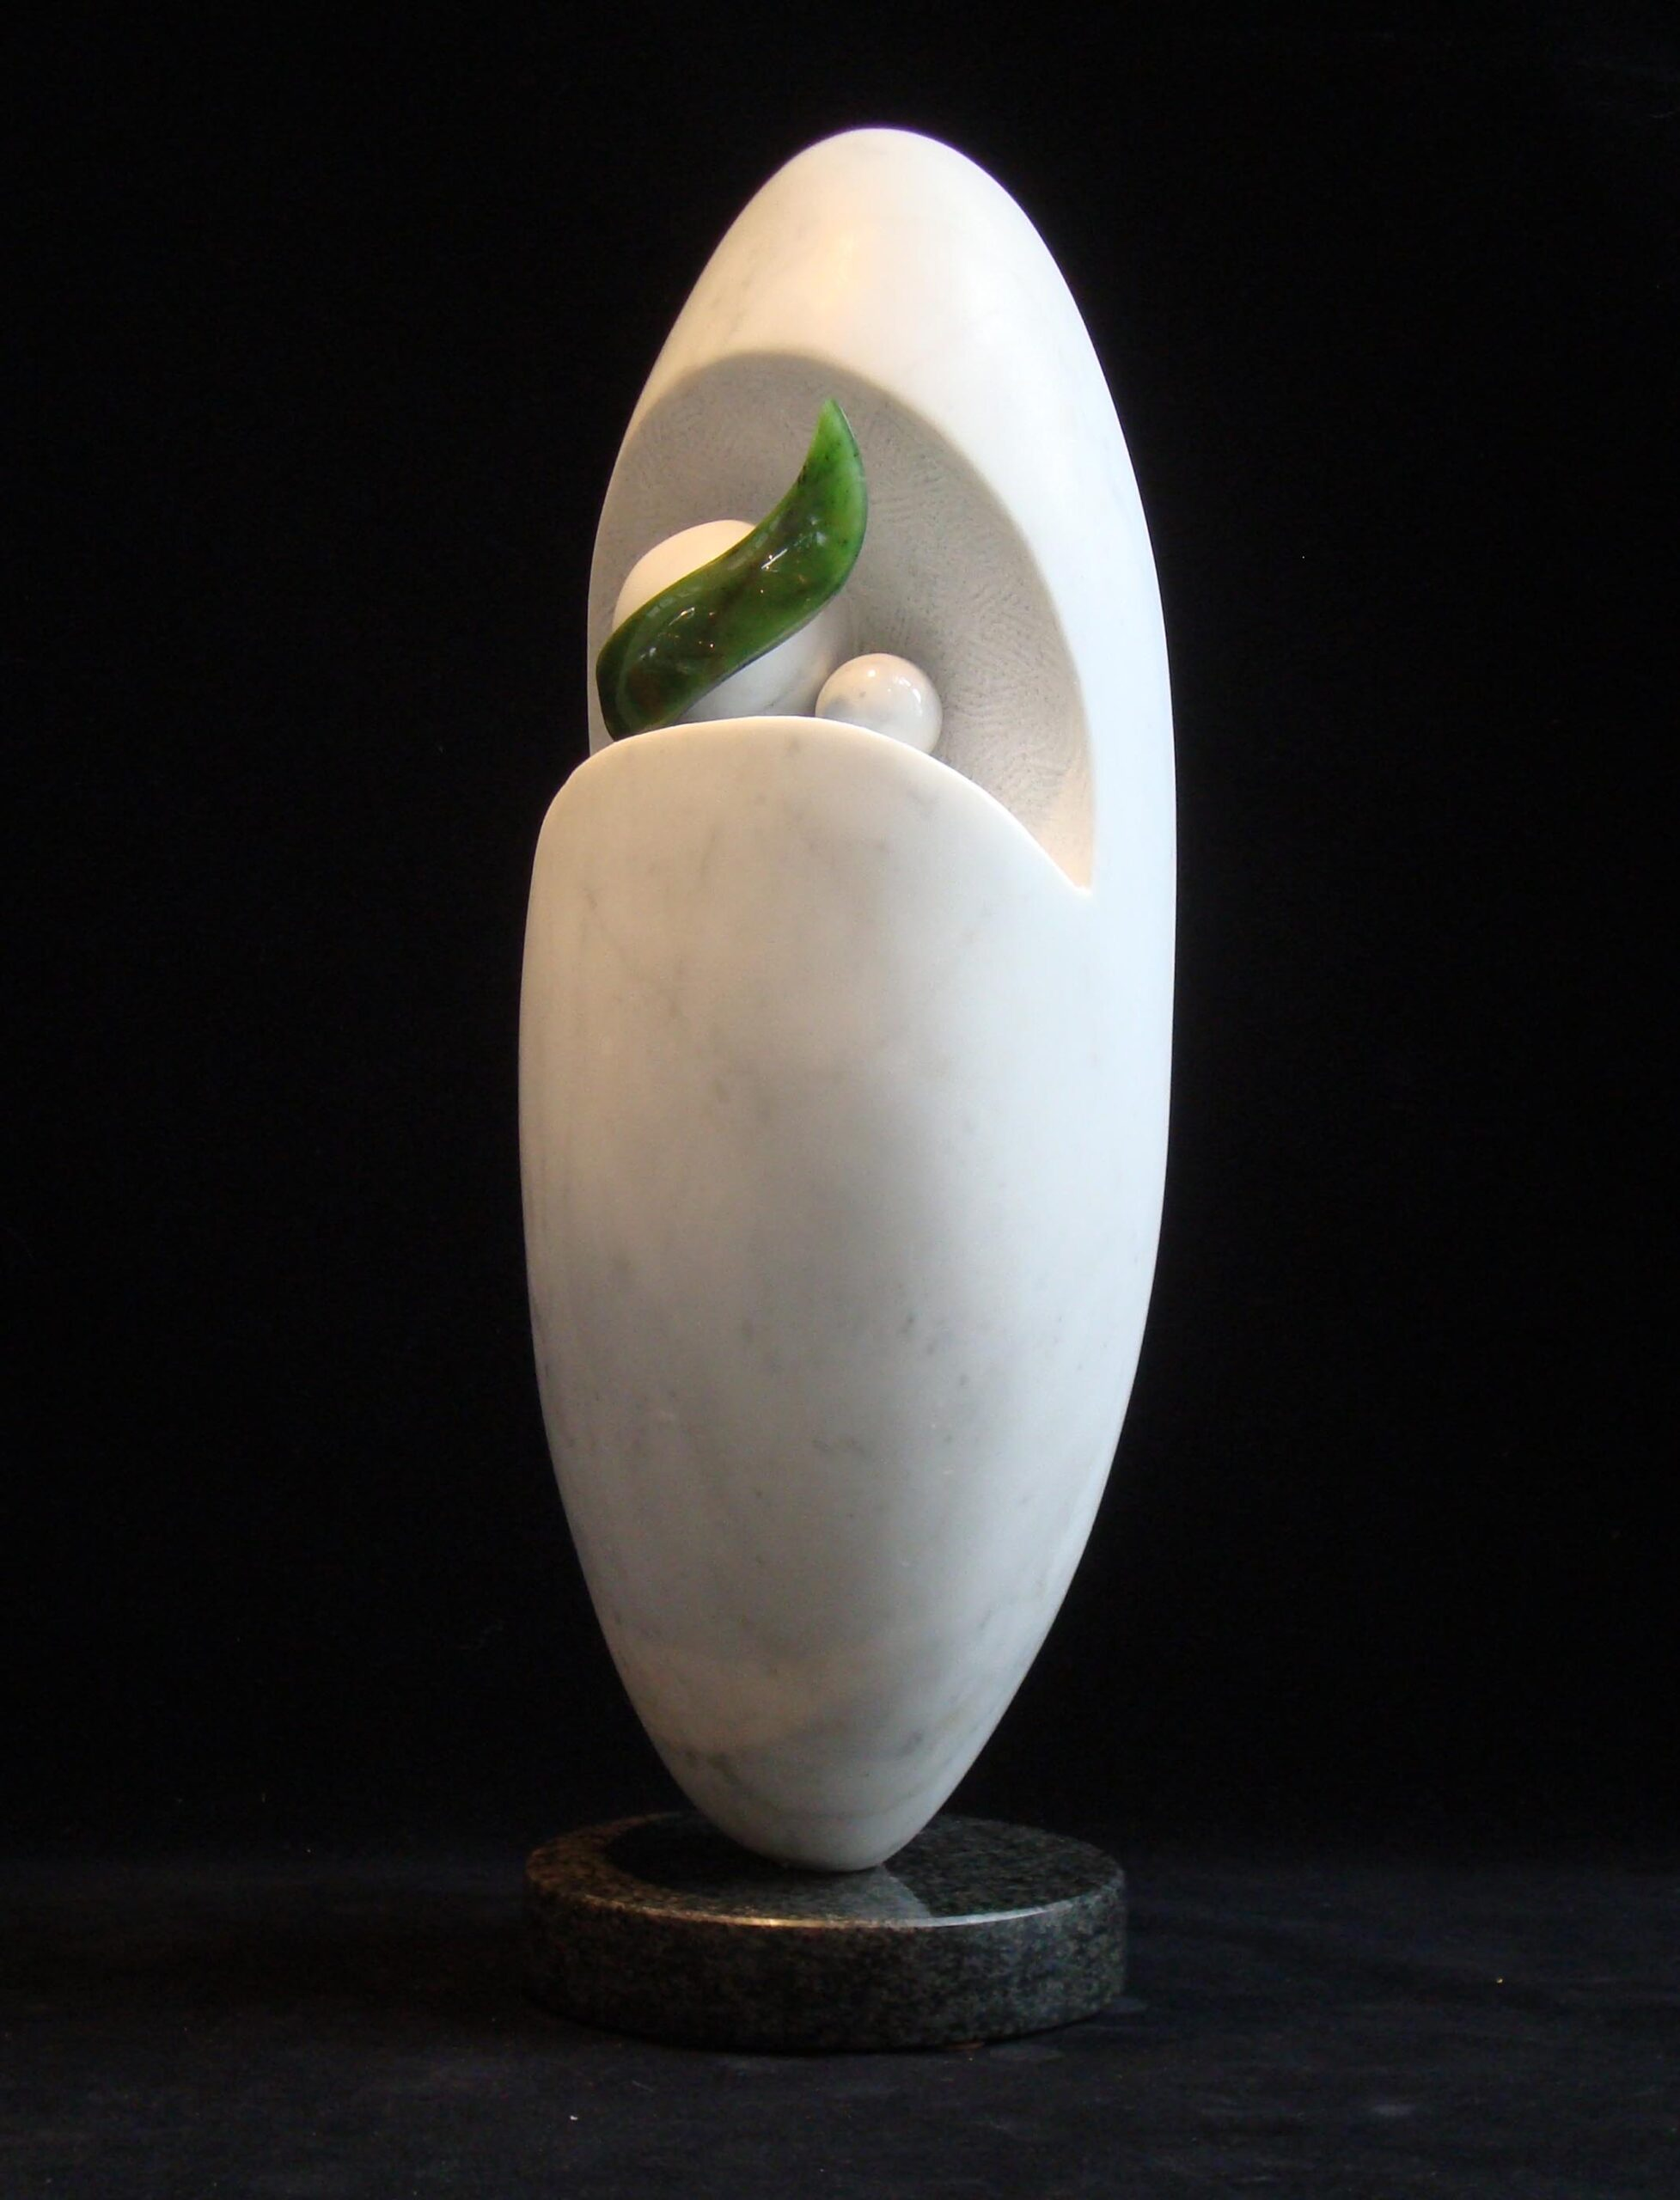 michael binkley sculptor stone sculpture artist abstract marble nephrite jade statue vancouver canada